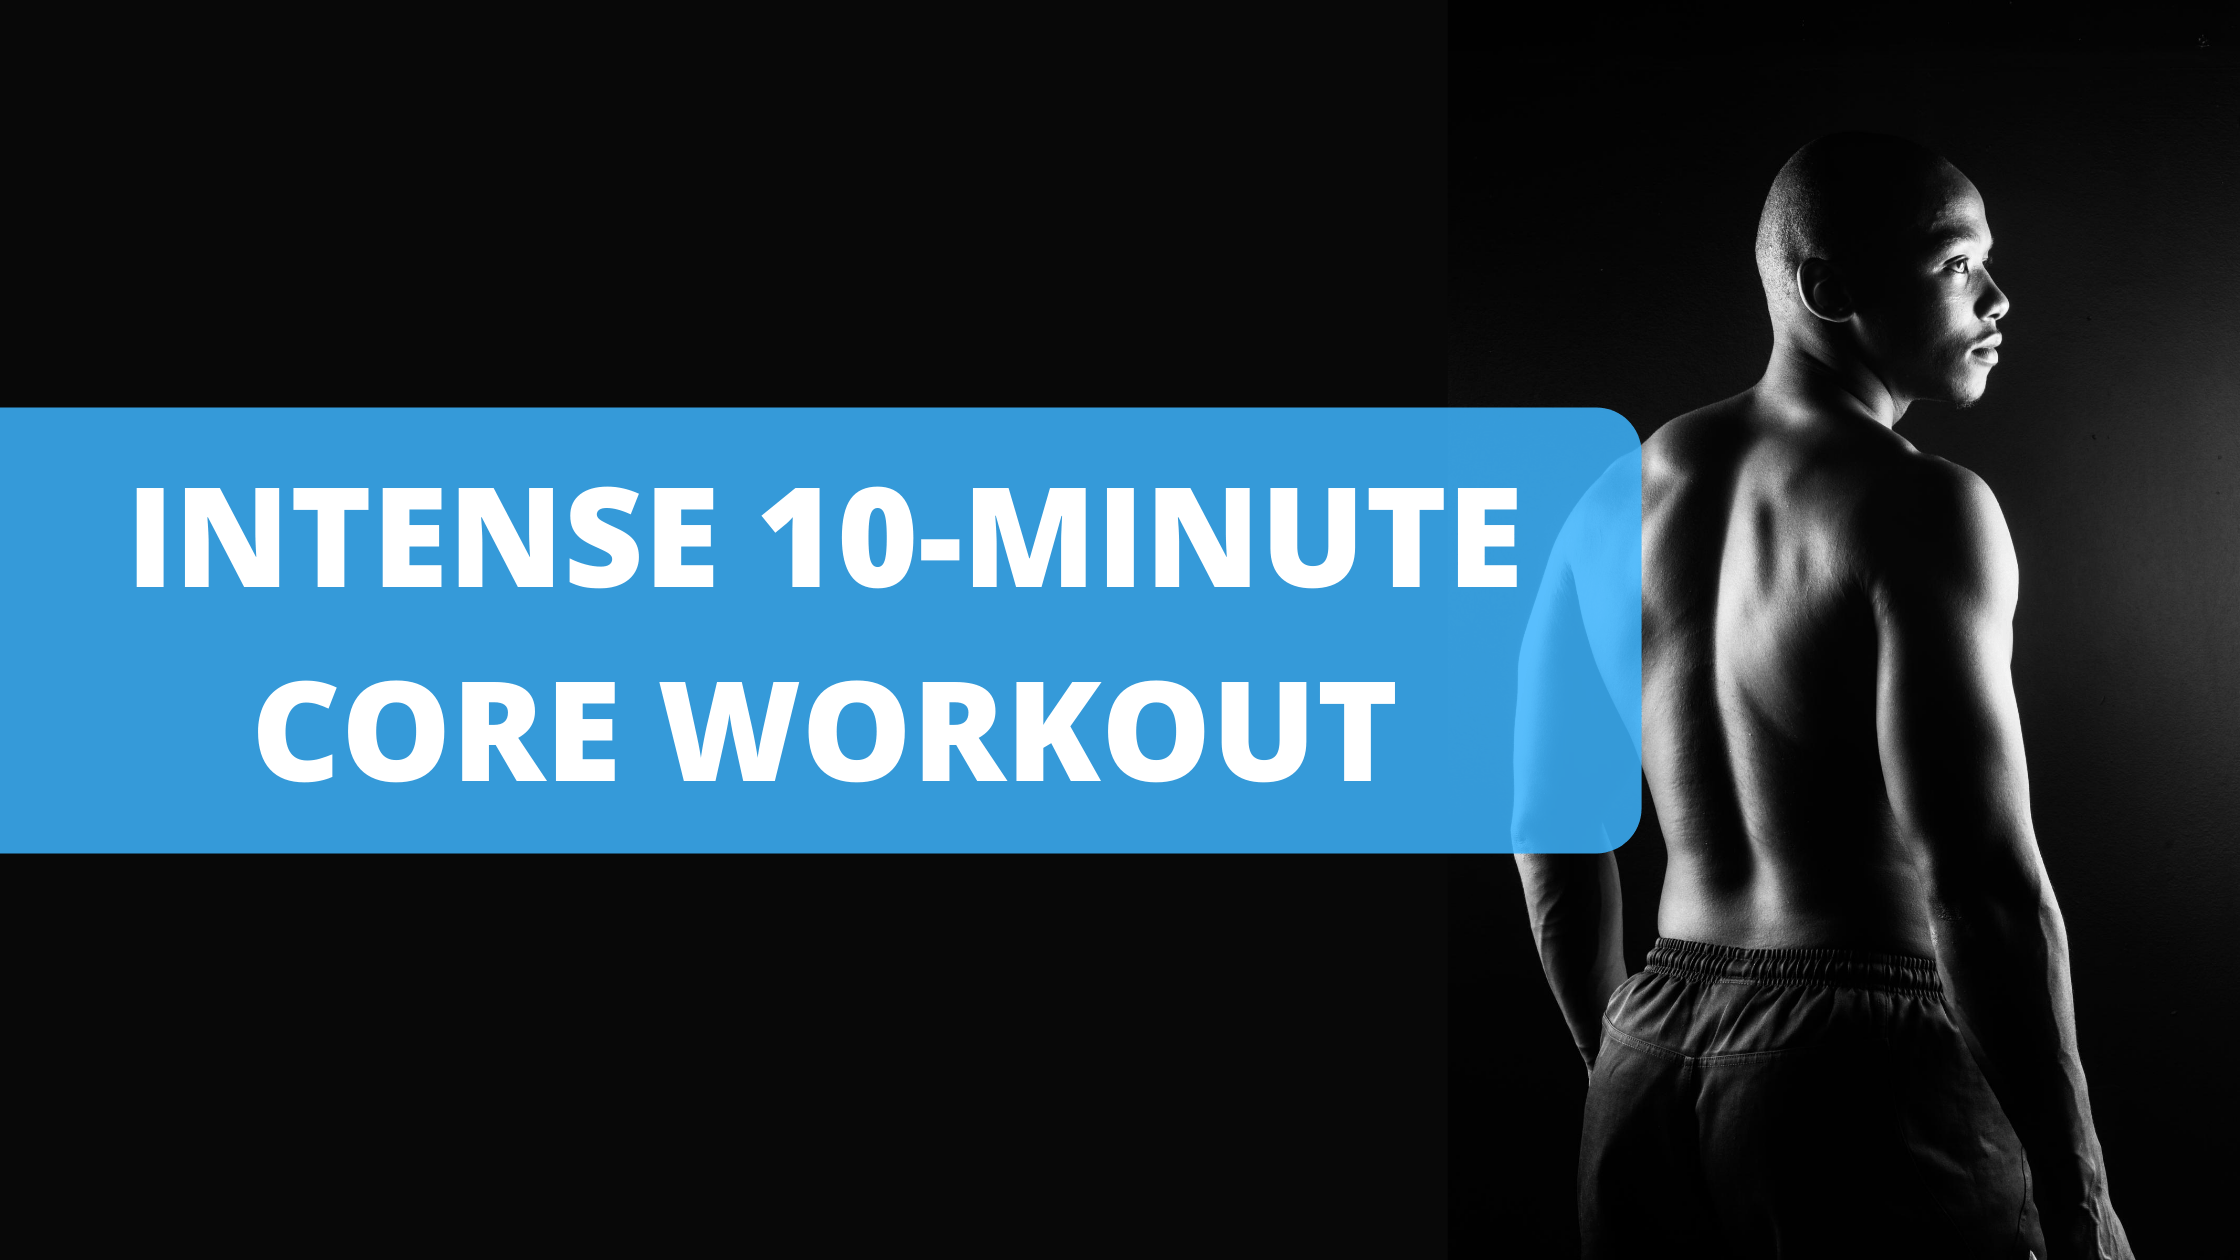 Intense 10-Minute Core Workout